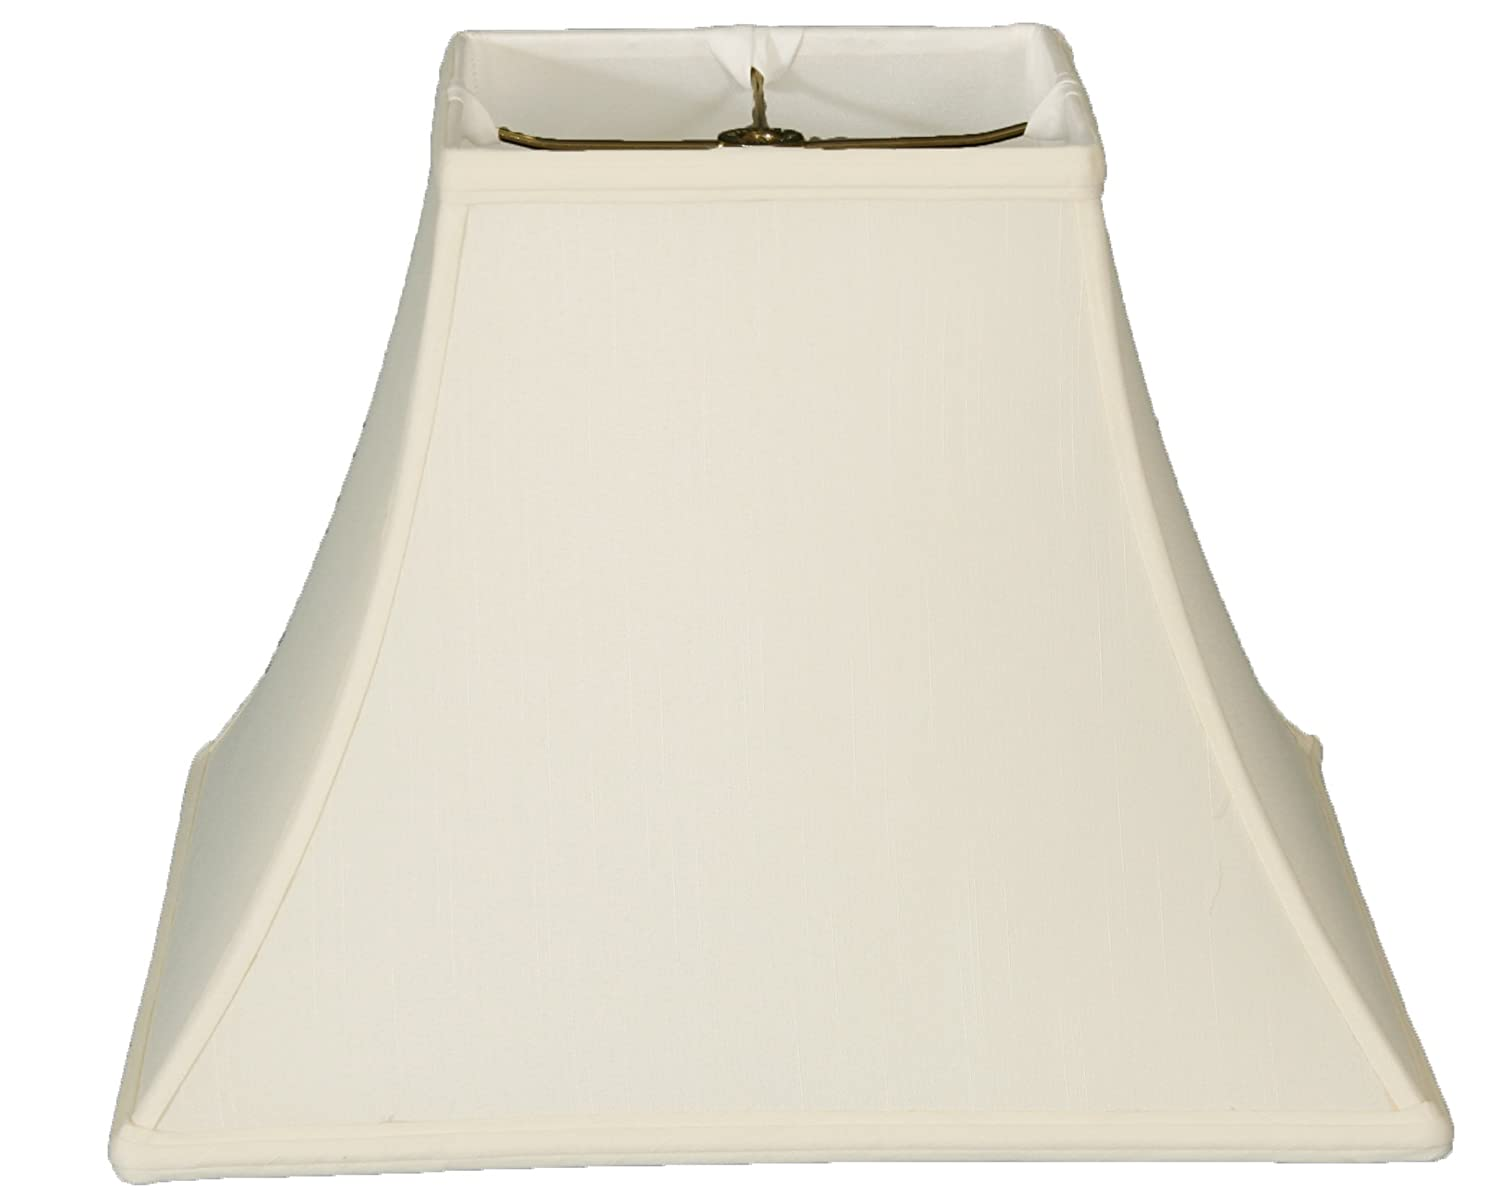 Egghsell Upgradelights Square Bell 6 Inch Clip On Chandelier Lampshade 3x6x6